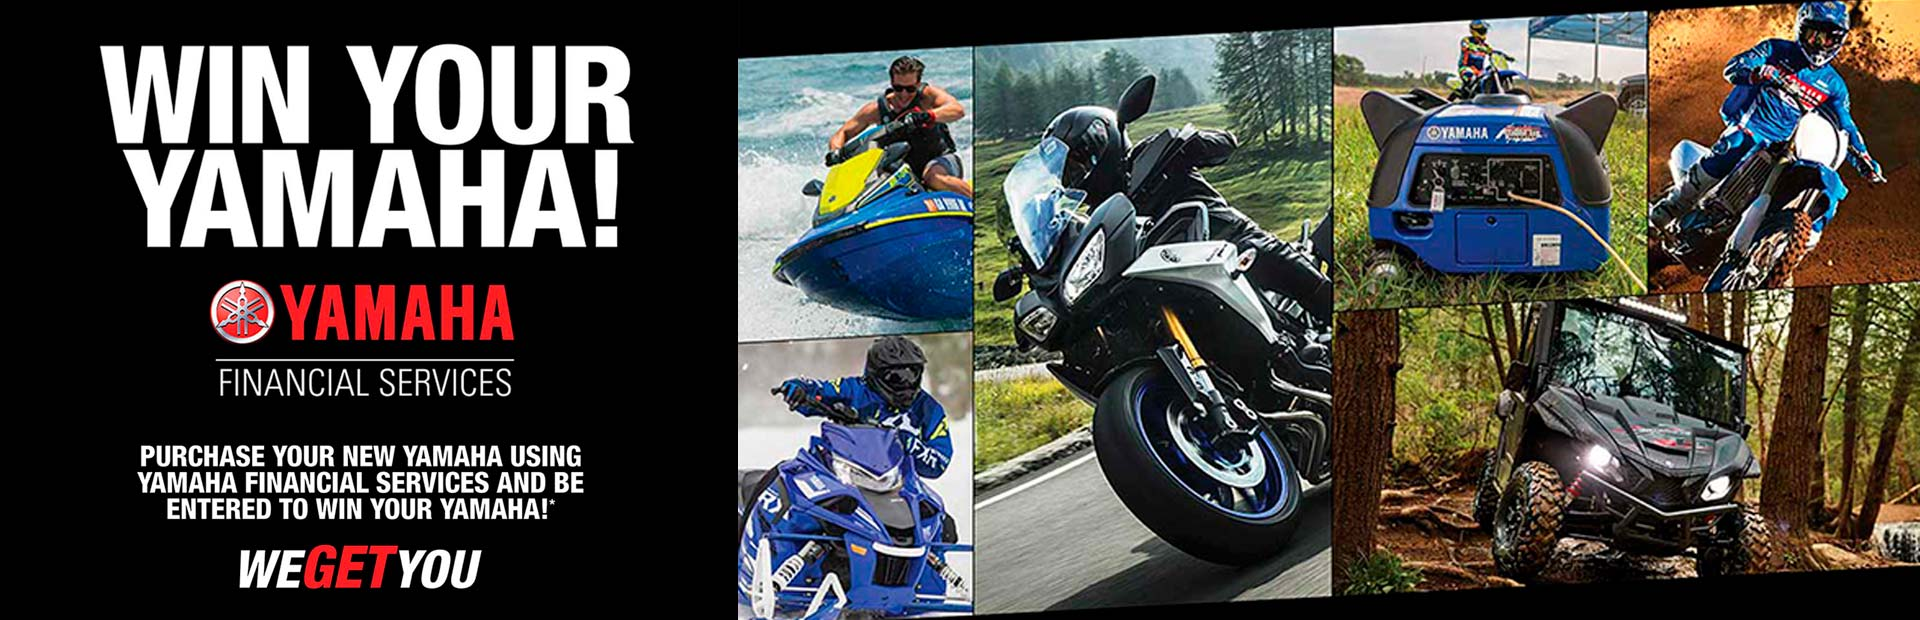 Yamaha: Win Your Yamaha